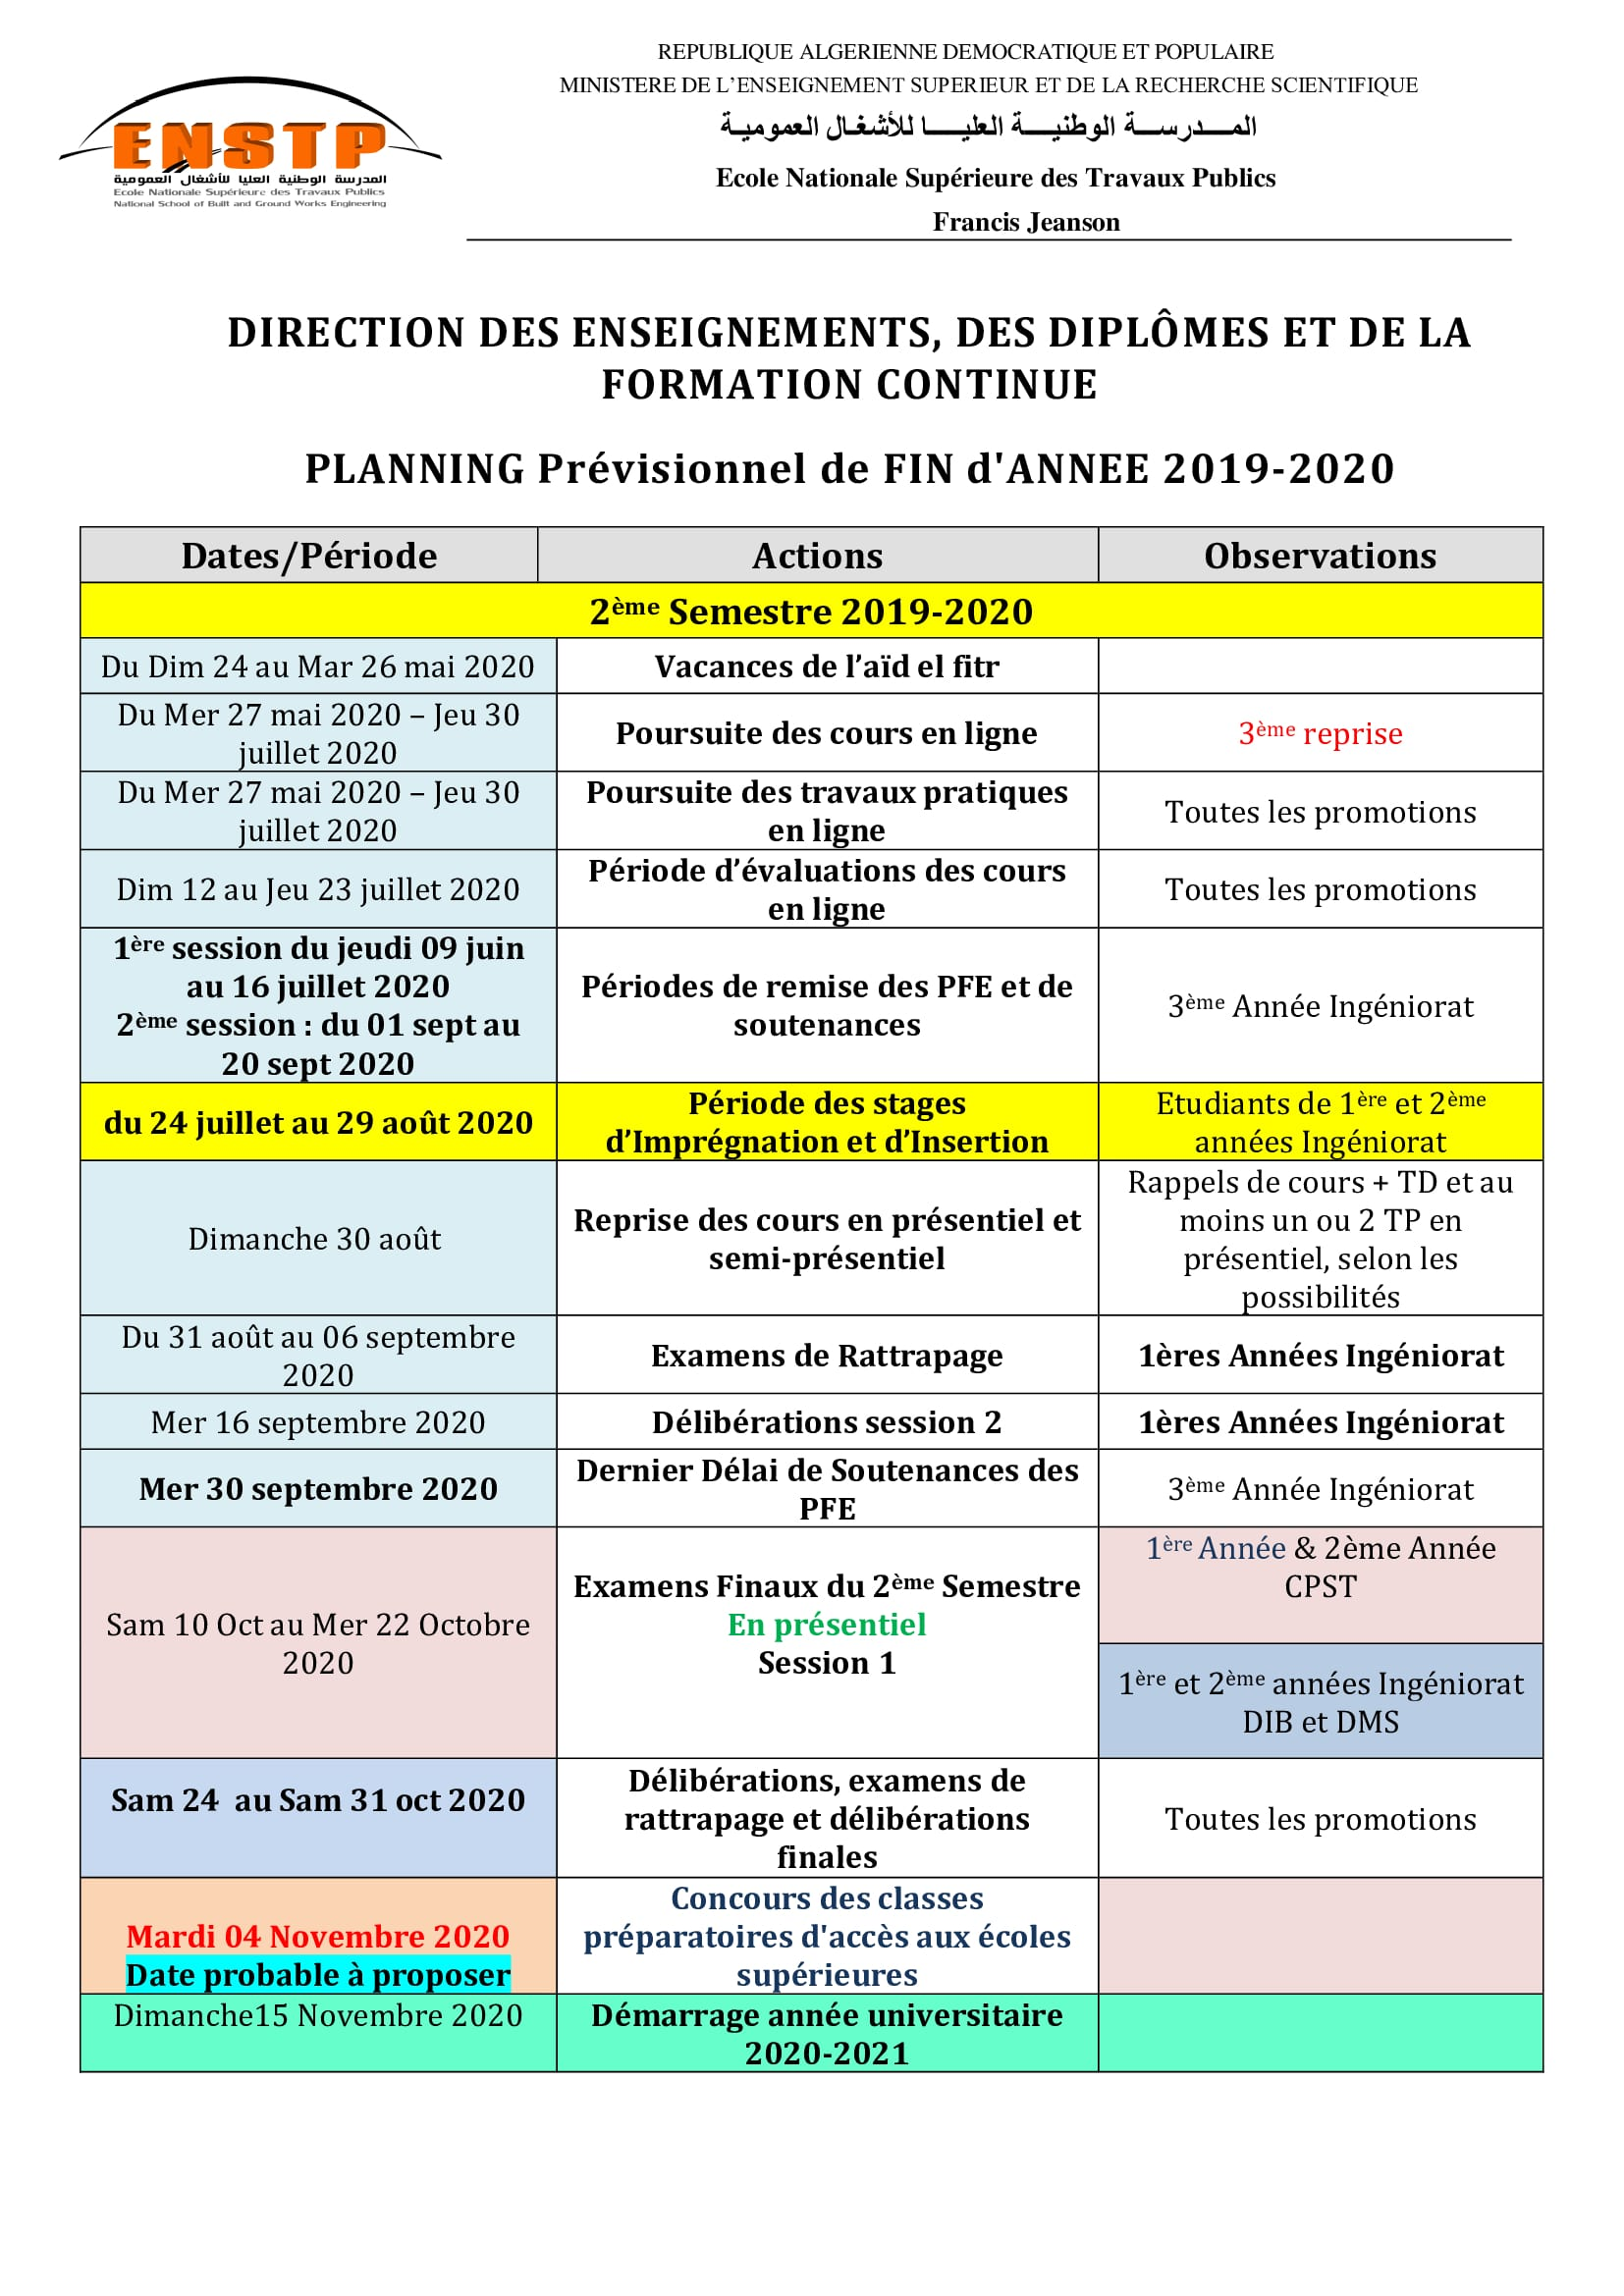 PLANNING Prévisionnel Version Fin ANNEE 2019 2020